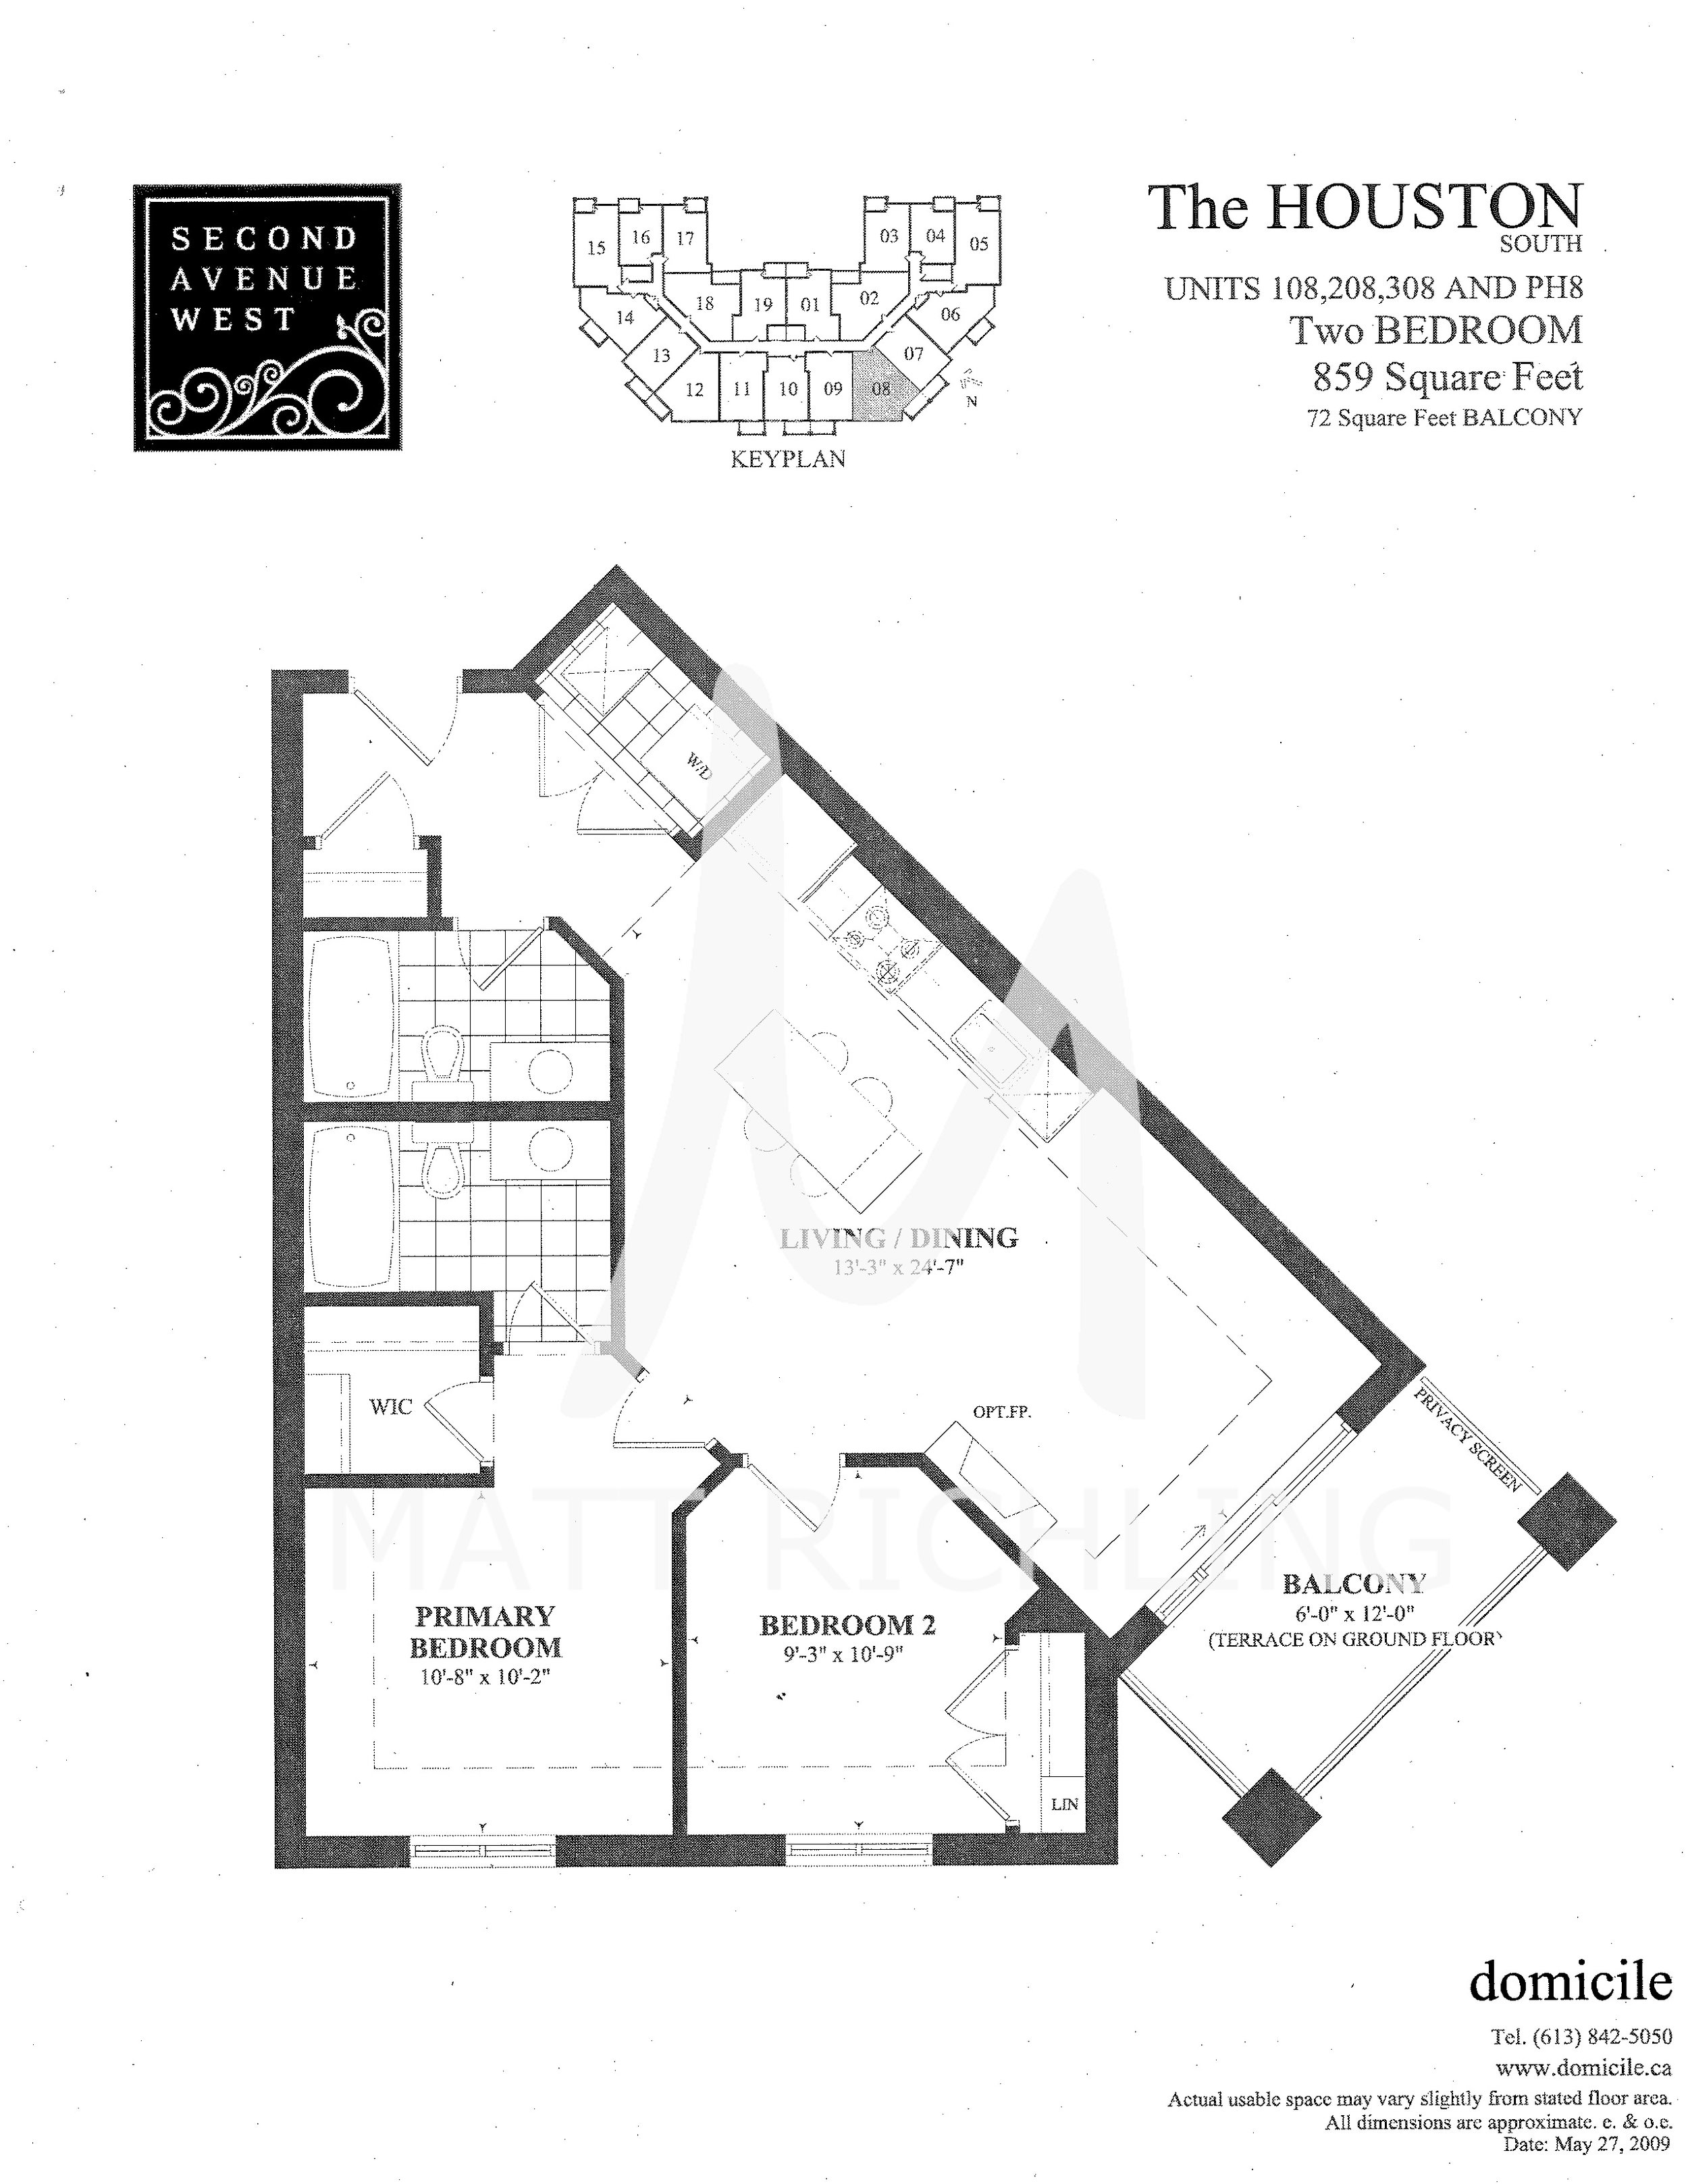 The-Houston---2-Bed---108,208,308,PH8.jpg